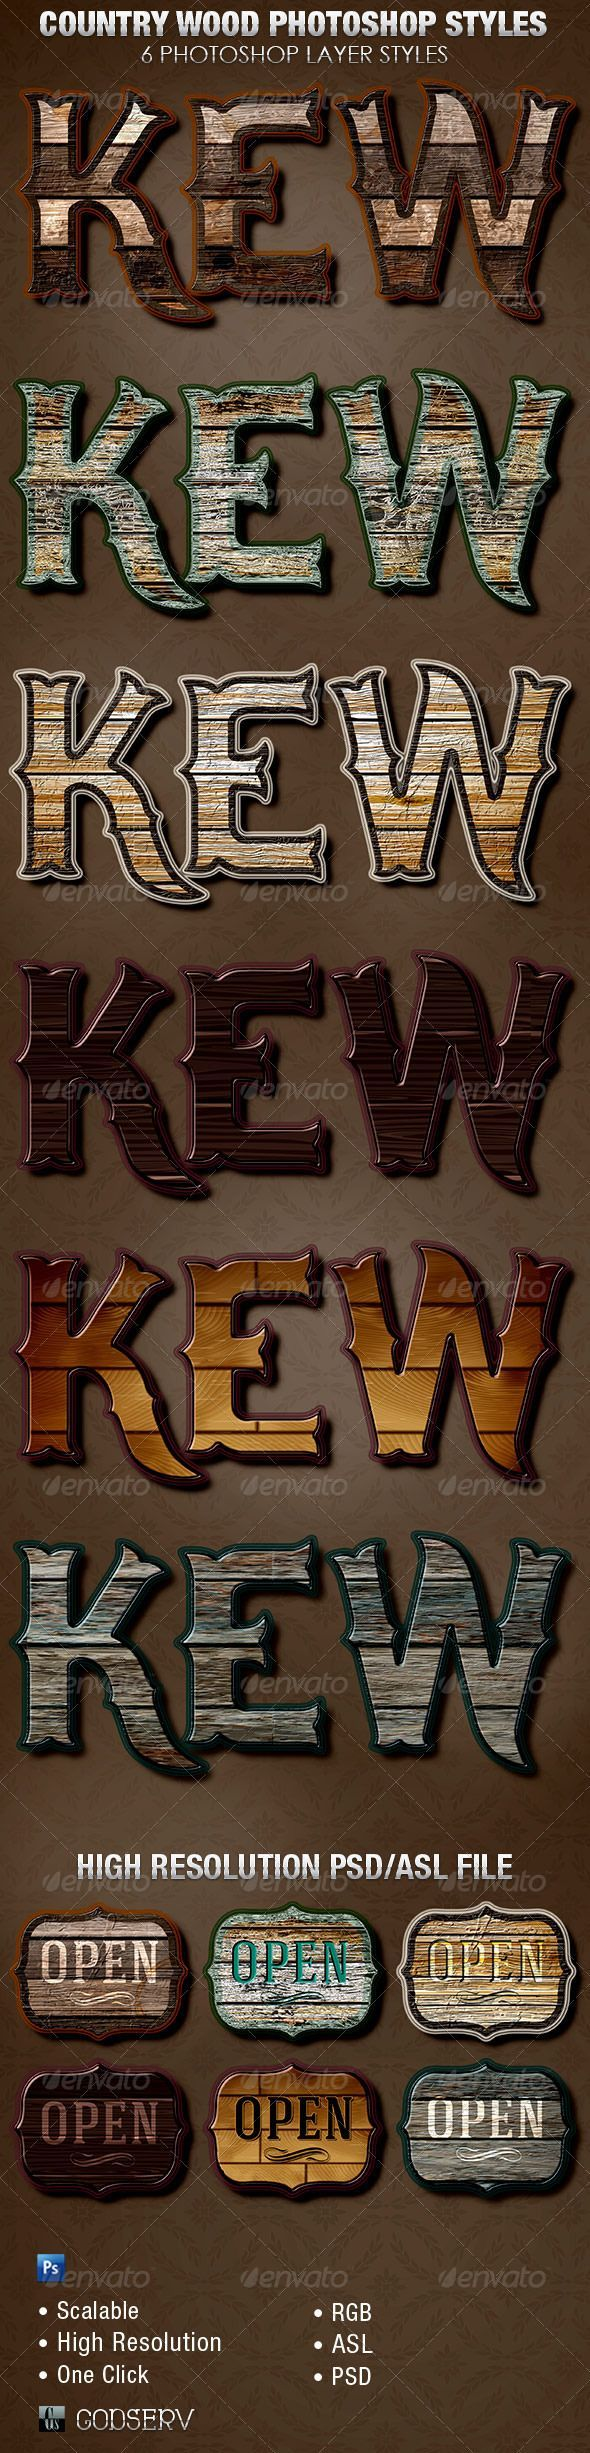 Country Wood Photoshop Layer Styles ...  asl, barbeque, beveled, burnt, carved, contoured, country, cowboy, effect, effects, flyer, furniture, fx, games, godserv, layer, movie, old, photoshop, red, rotten, skin, styles, text, textured, western, wood, wooden